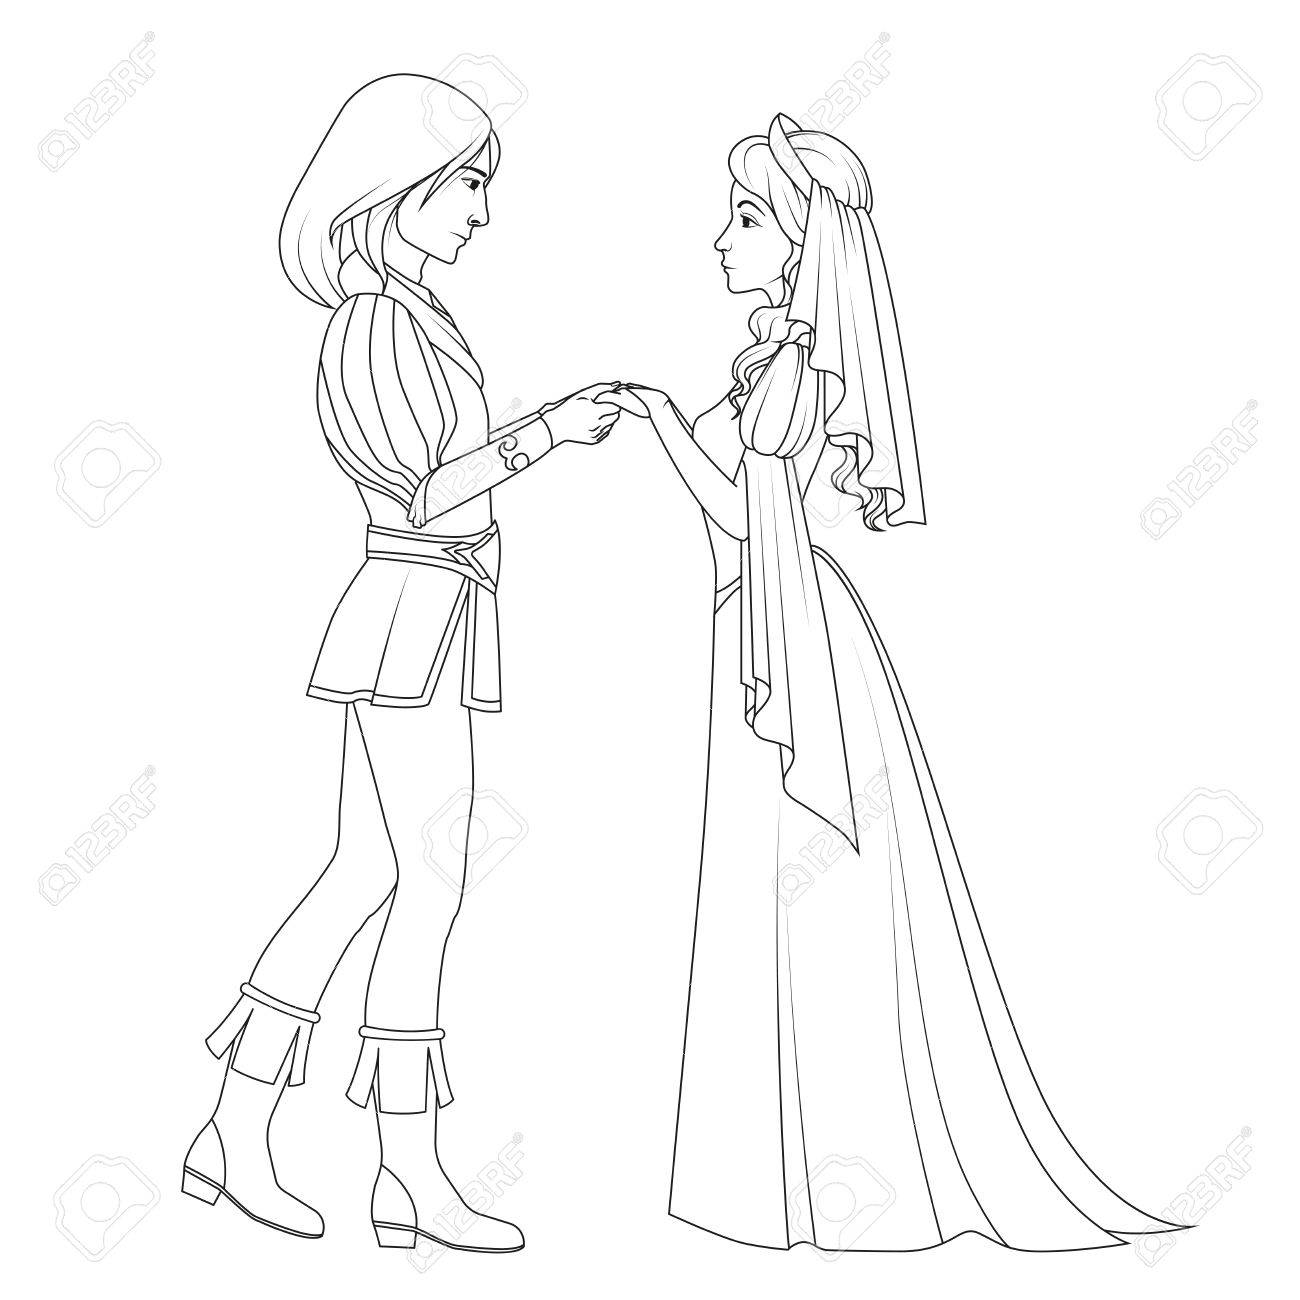 Coloring Book: Medieval Couple Holding Hands Royalty Free Cliparts ...